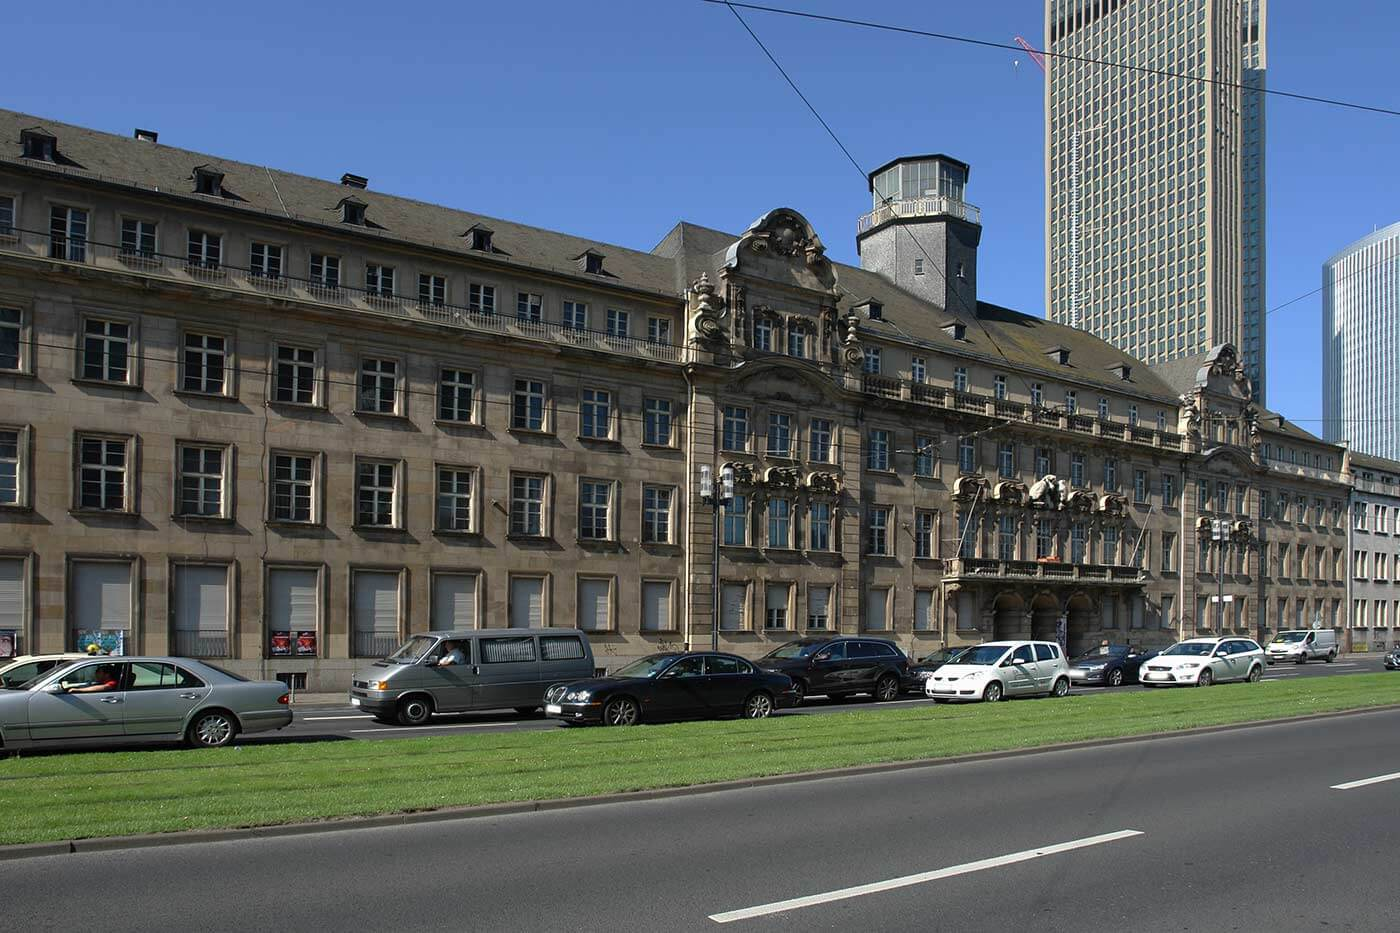 City of Frankfurt is putting pressure on Hesse at the former police department